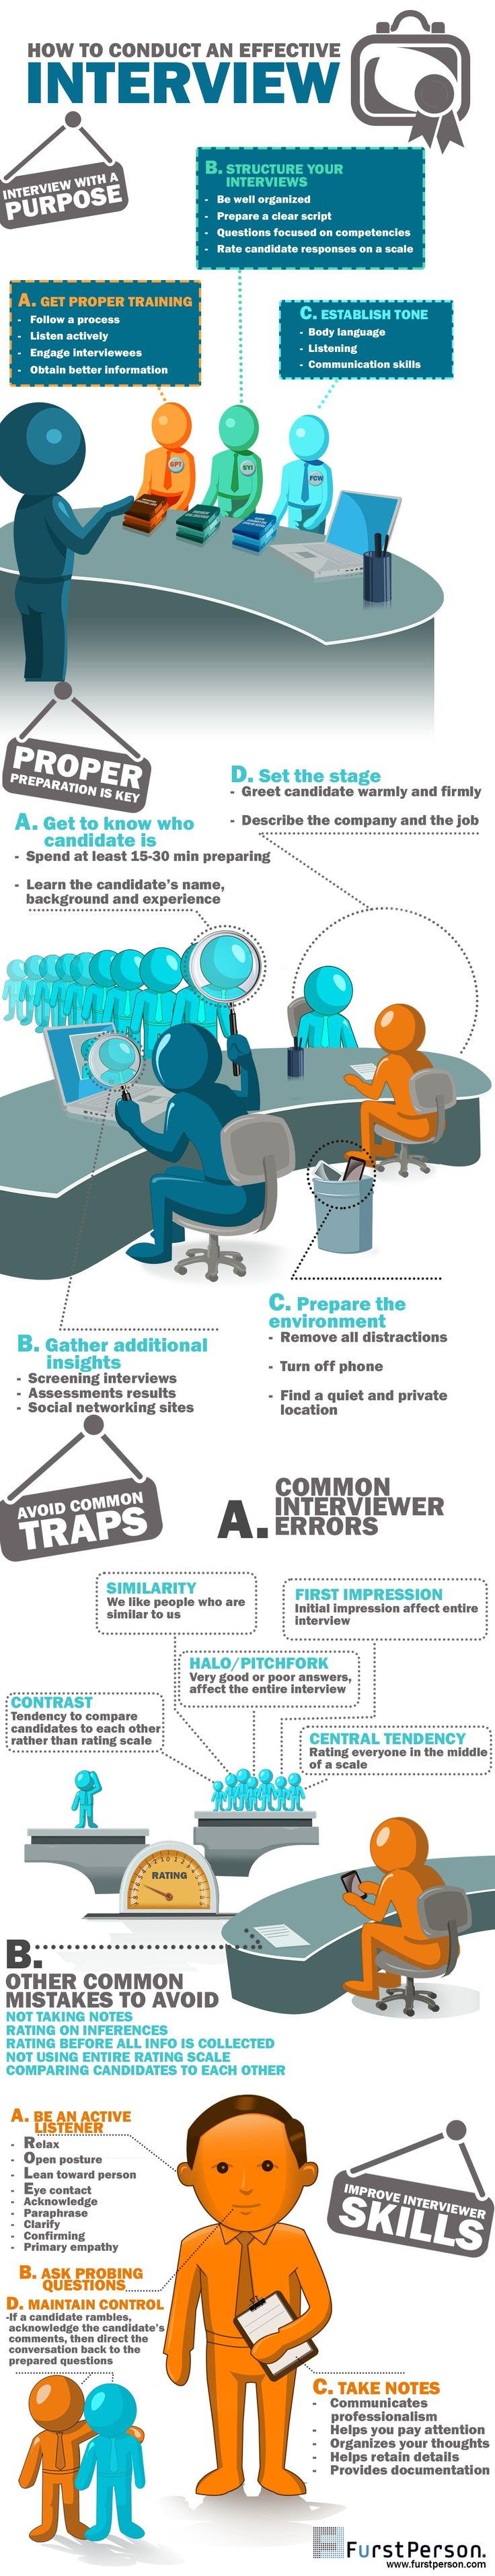 ResumeDesignCo.com   @resumedesignco   This infographic is made to show how to conduct an effective interview. There are three main things employer should remember before he conduct intervi